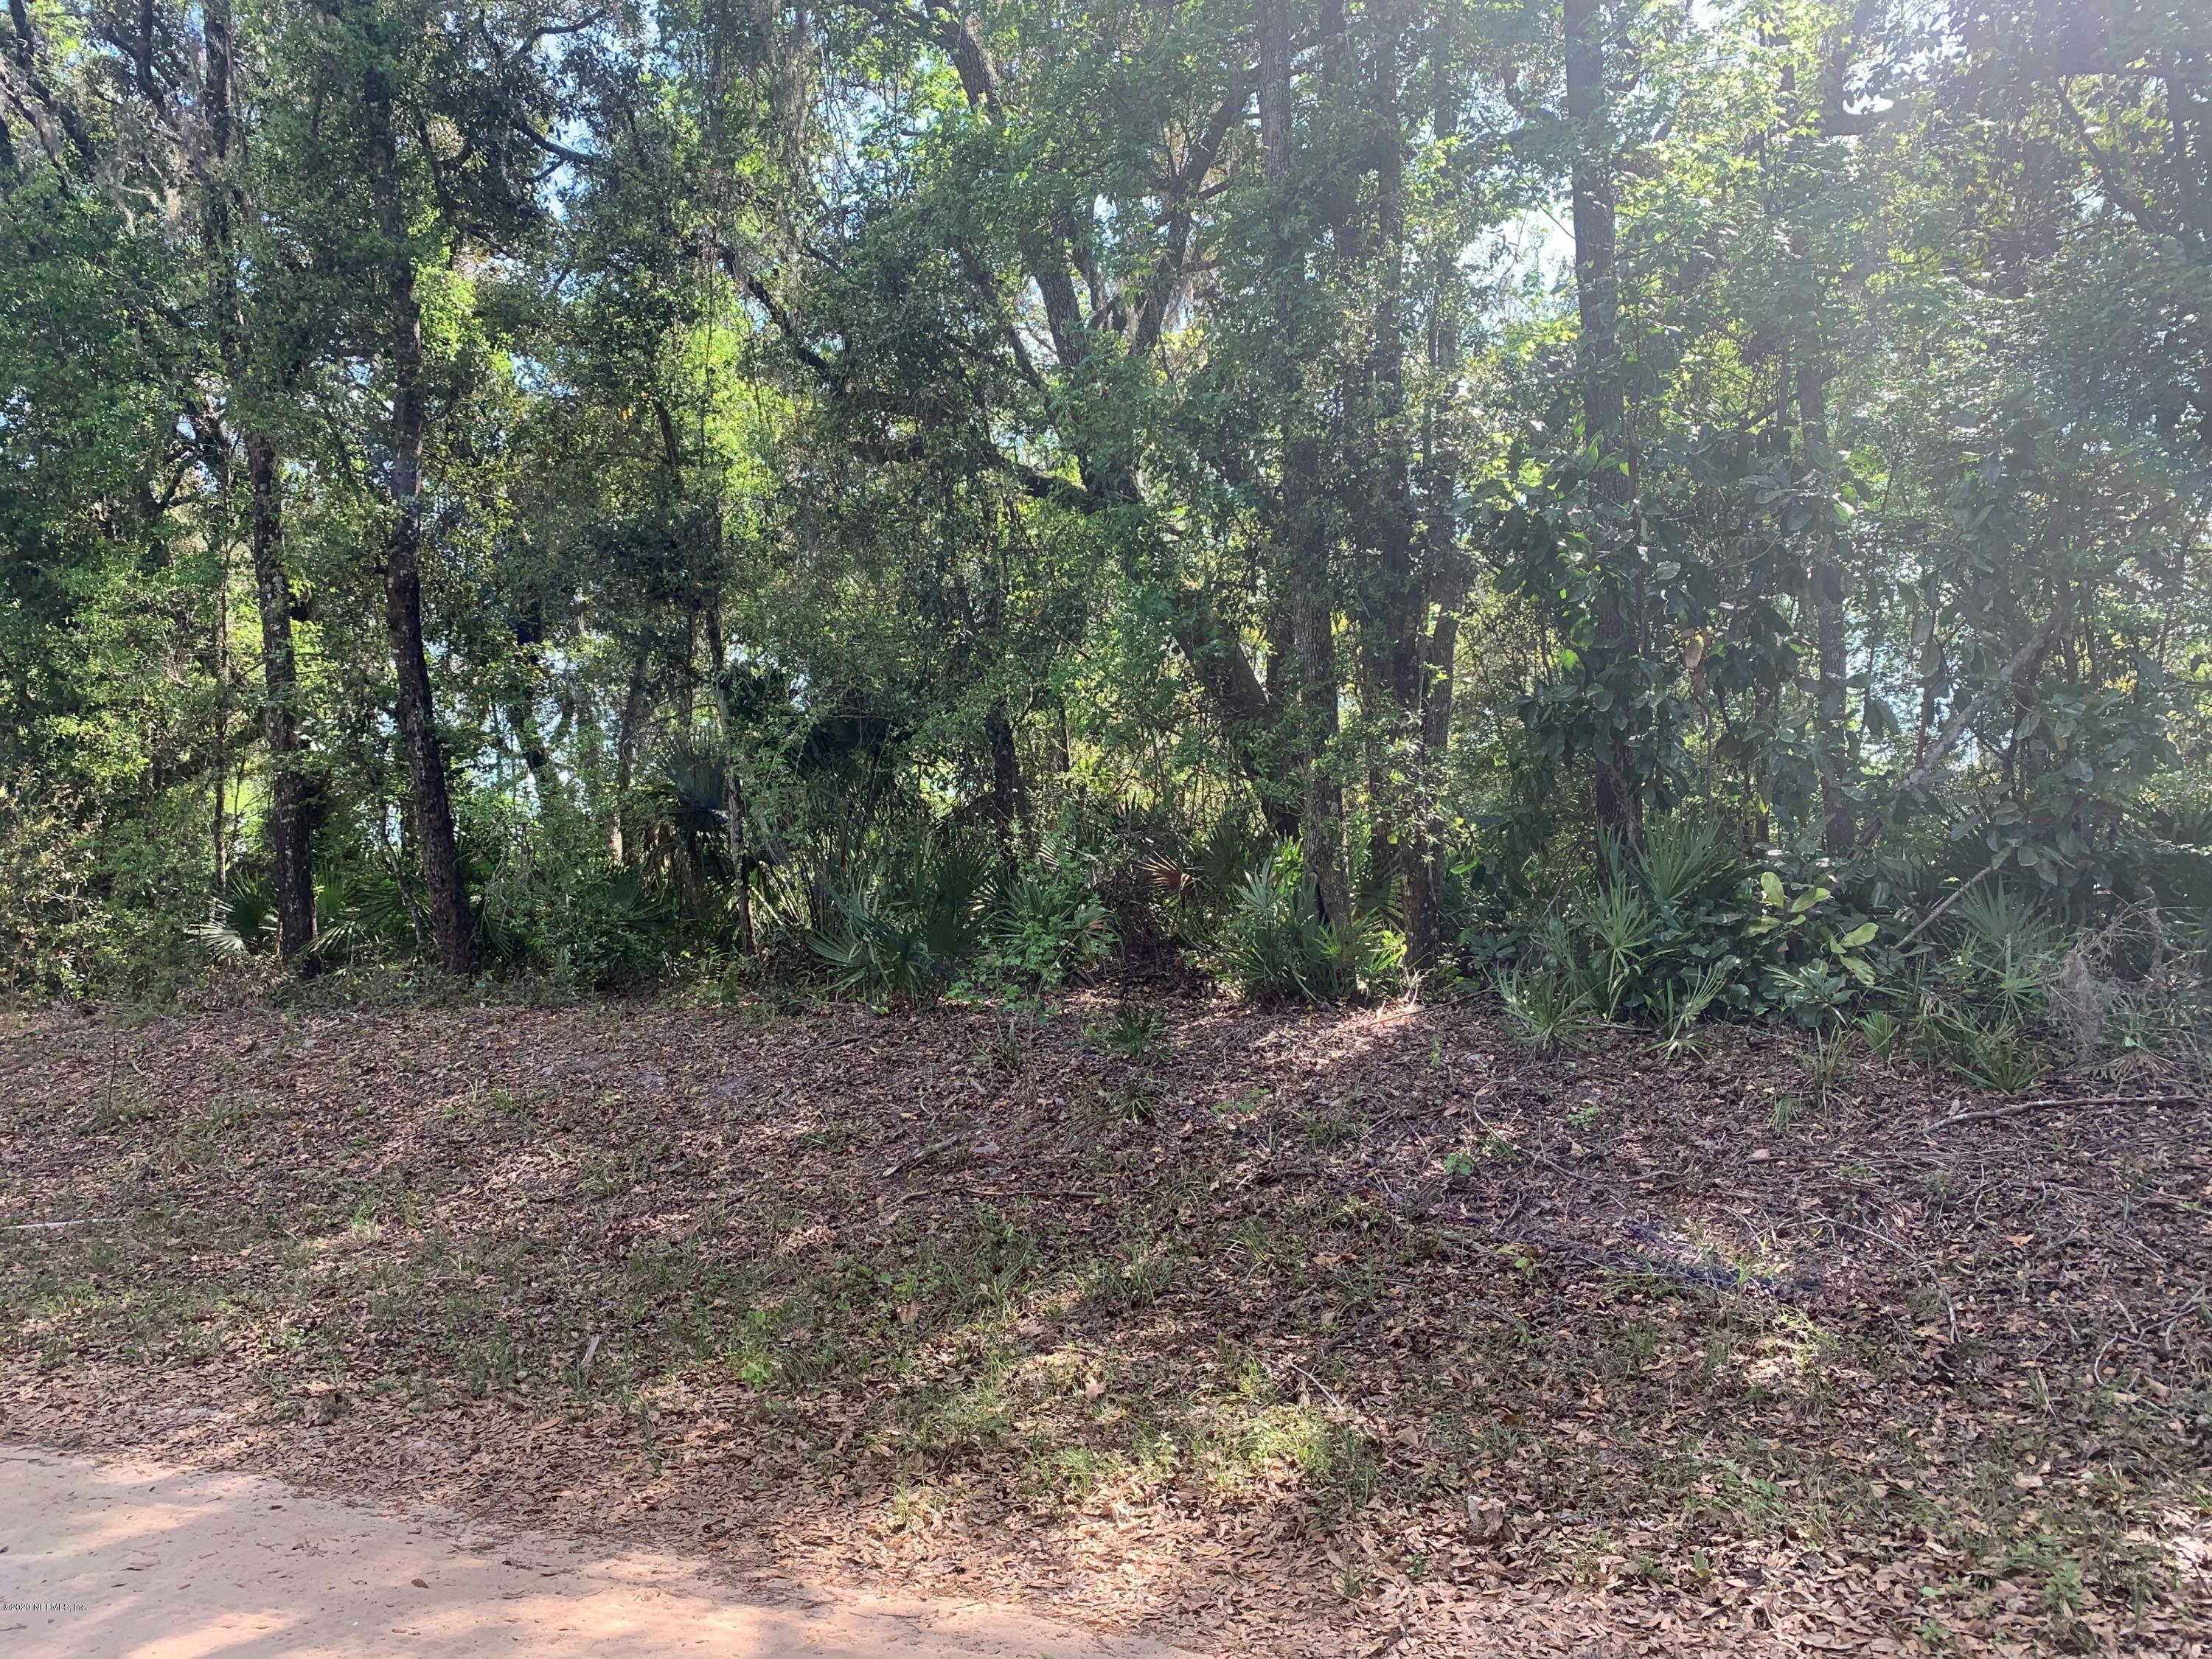 135 FISHERMANS, INTERLACHEN, FLORIDA 32148, ,Vacant land,For sale,FISHERMANS,970684